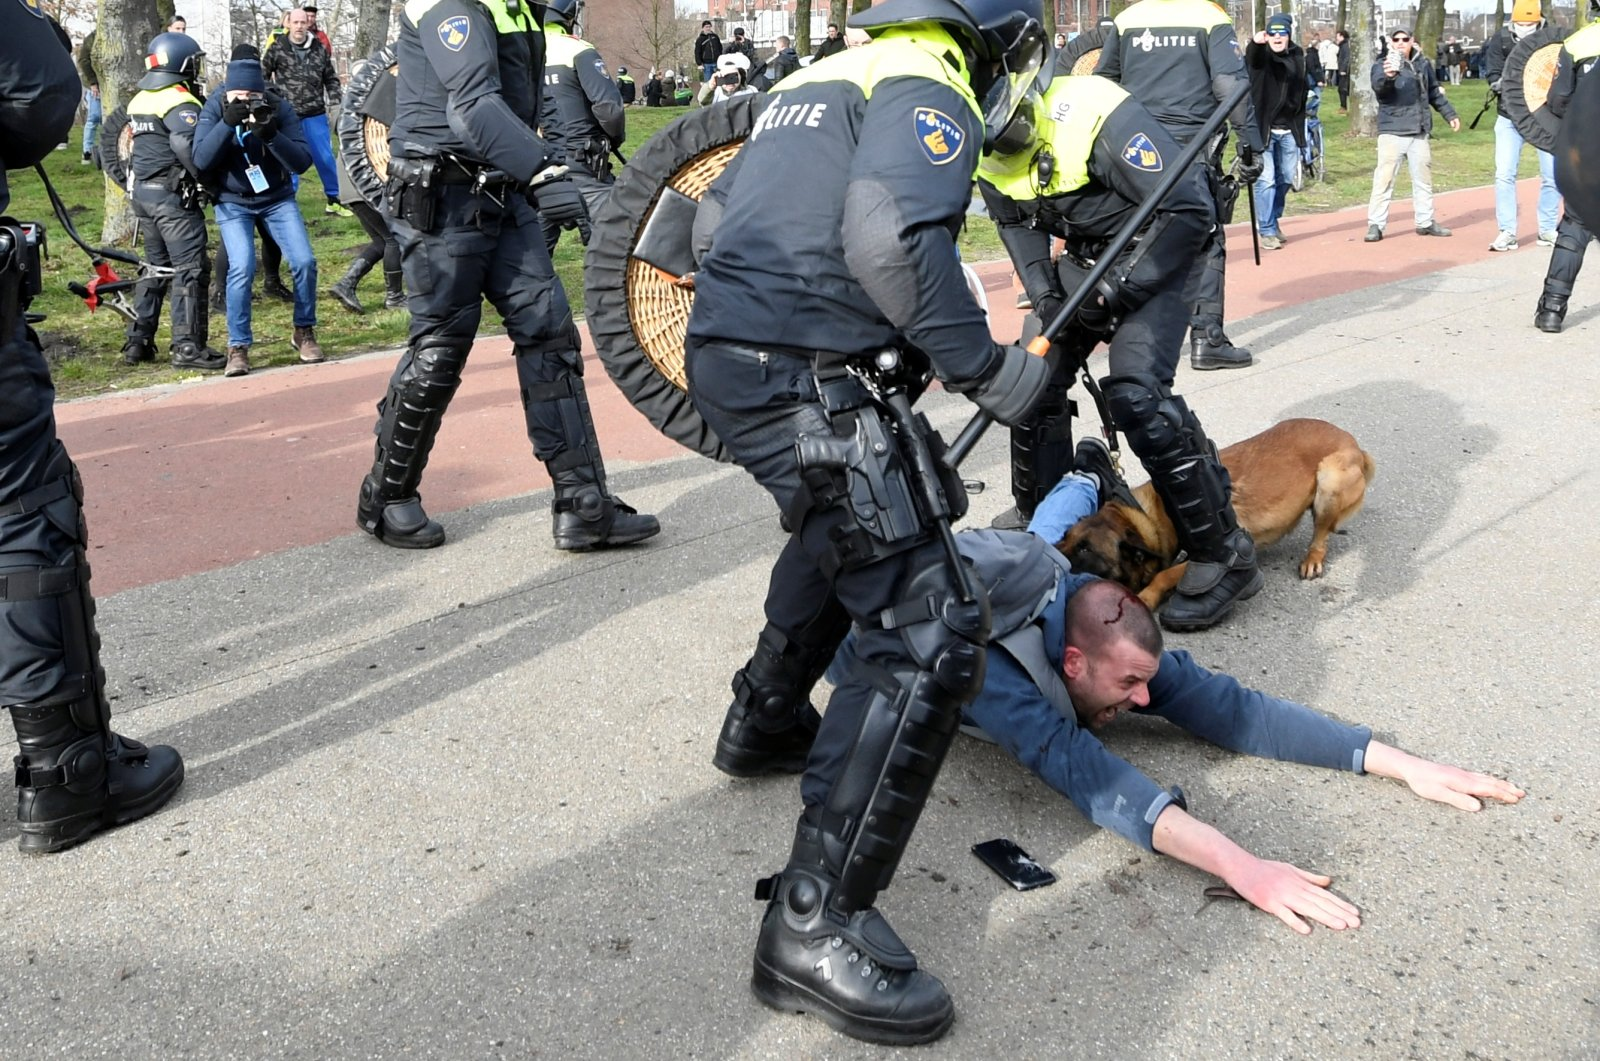 A demonstrator is bitten by a police dog while fighting with police during a protest against the coronavirus disease (COVID-19) restrictions in The Hague, Netherlands, March 14, 2021. (Reuters Photo)